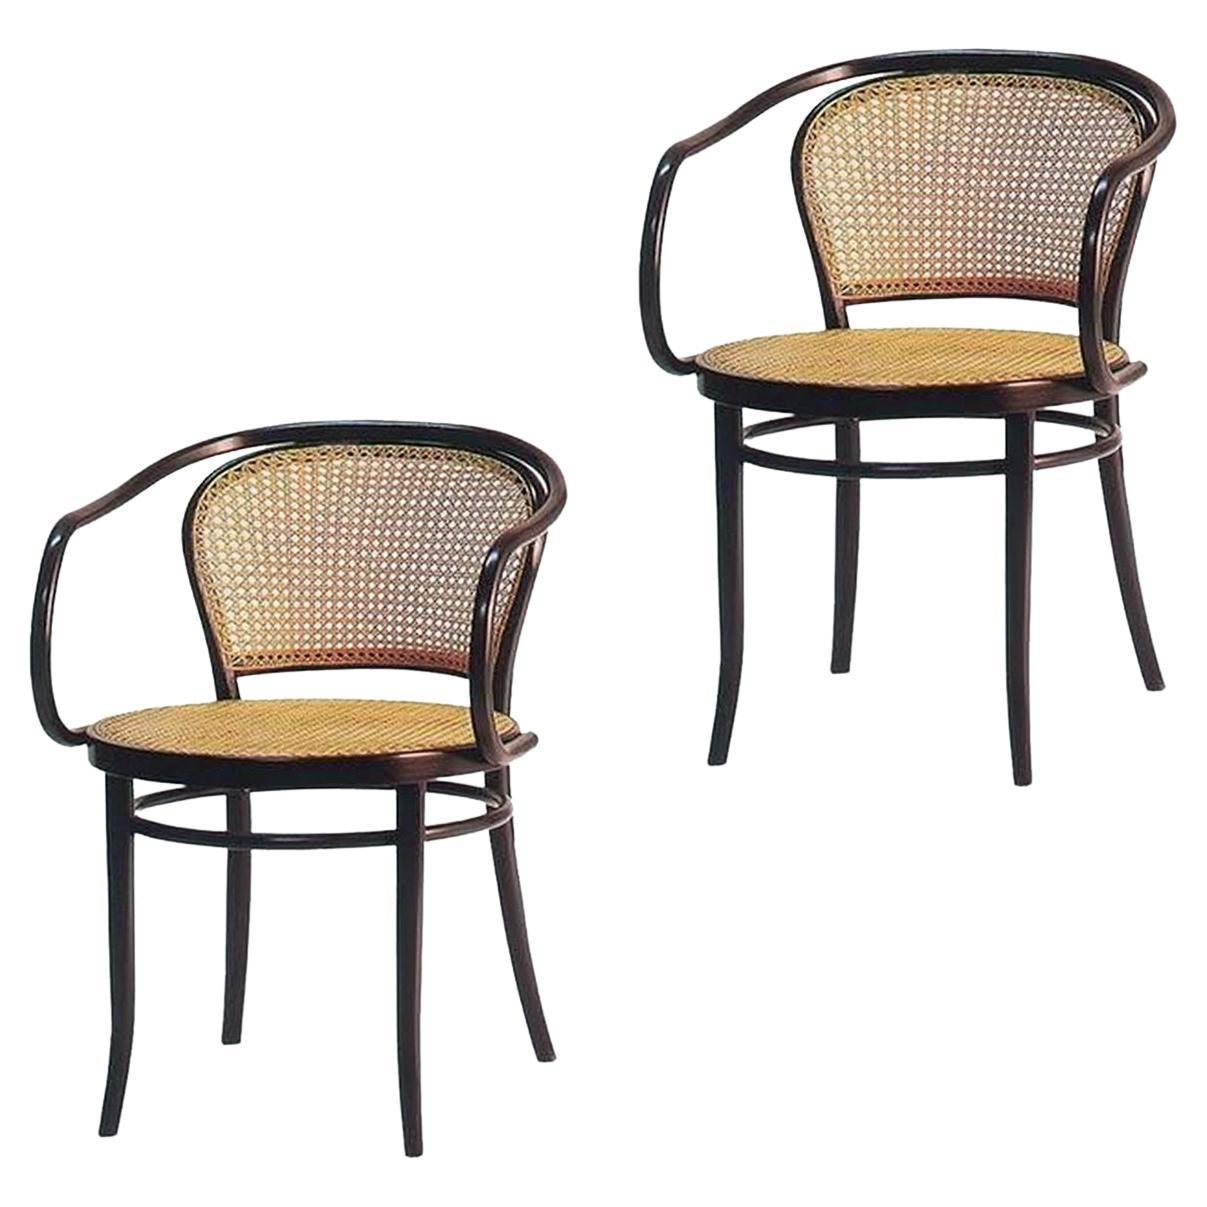 August Thonet Chairs 33 B9 Set of 2, Czech Republic, Early 20th Century